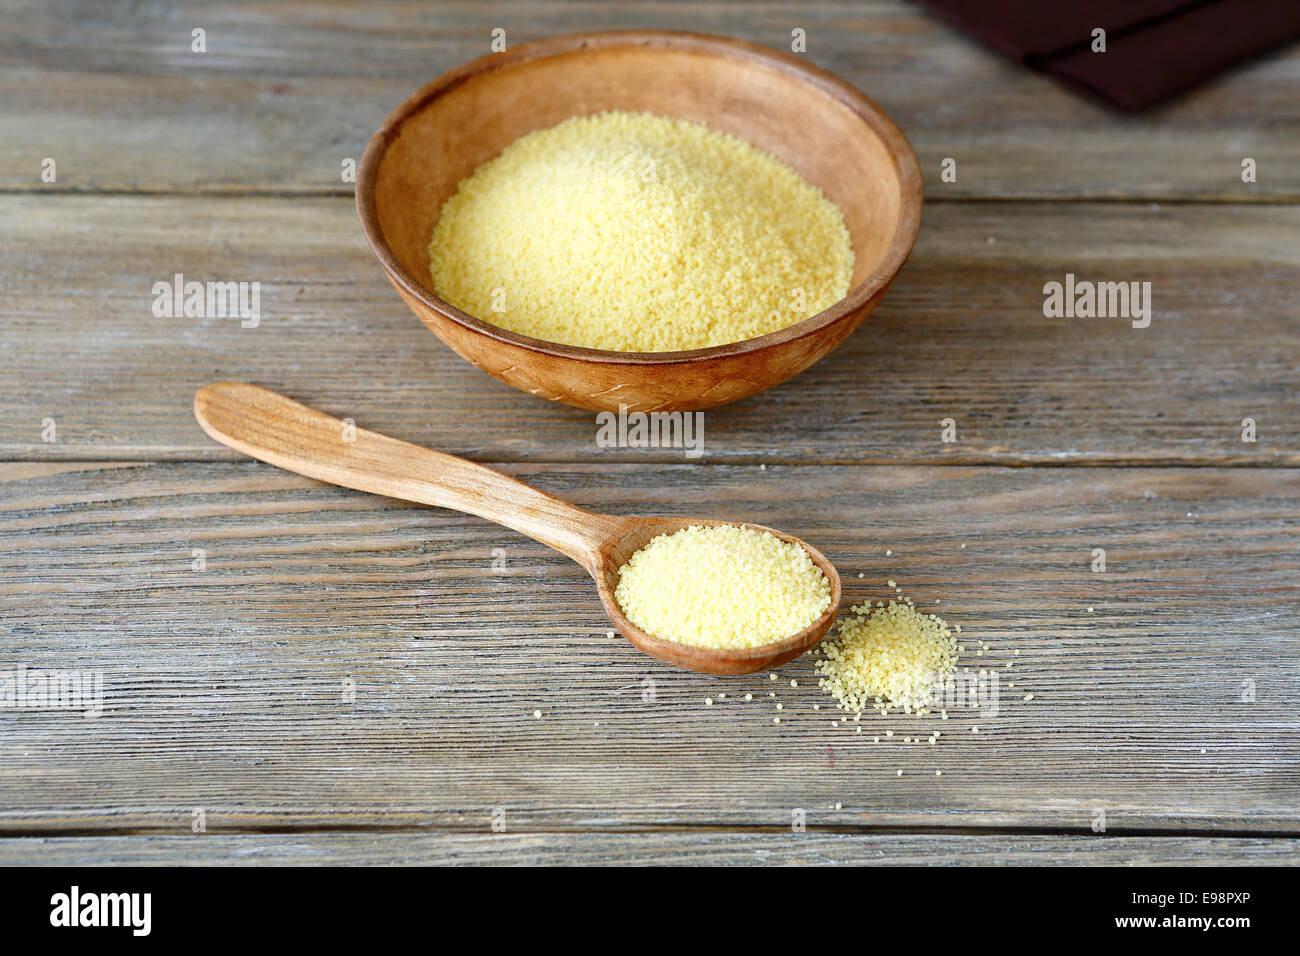 Couscous in a clay bowl and wooden spoon, food ingredient - Stock Image